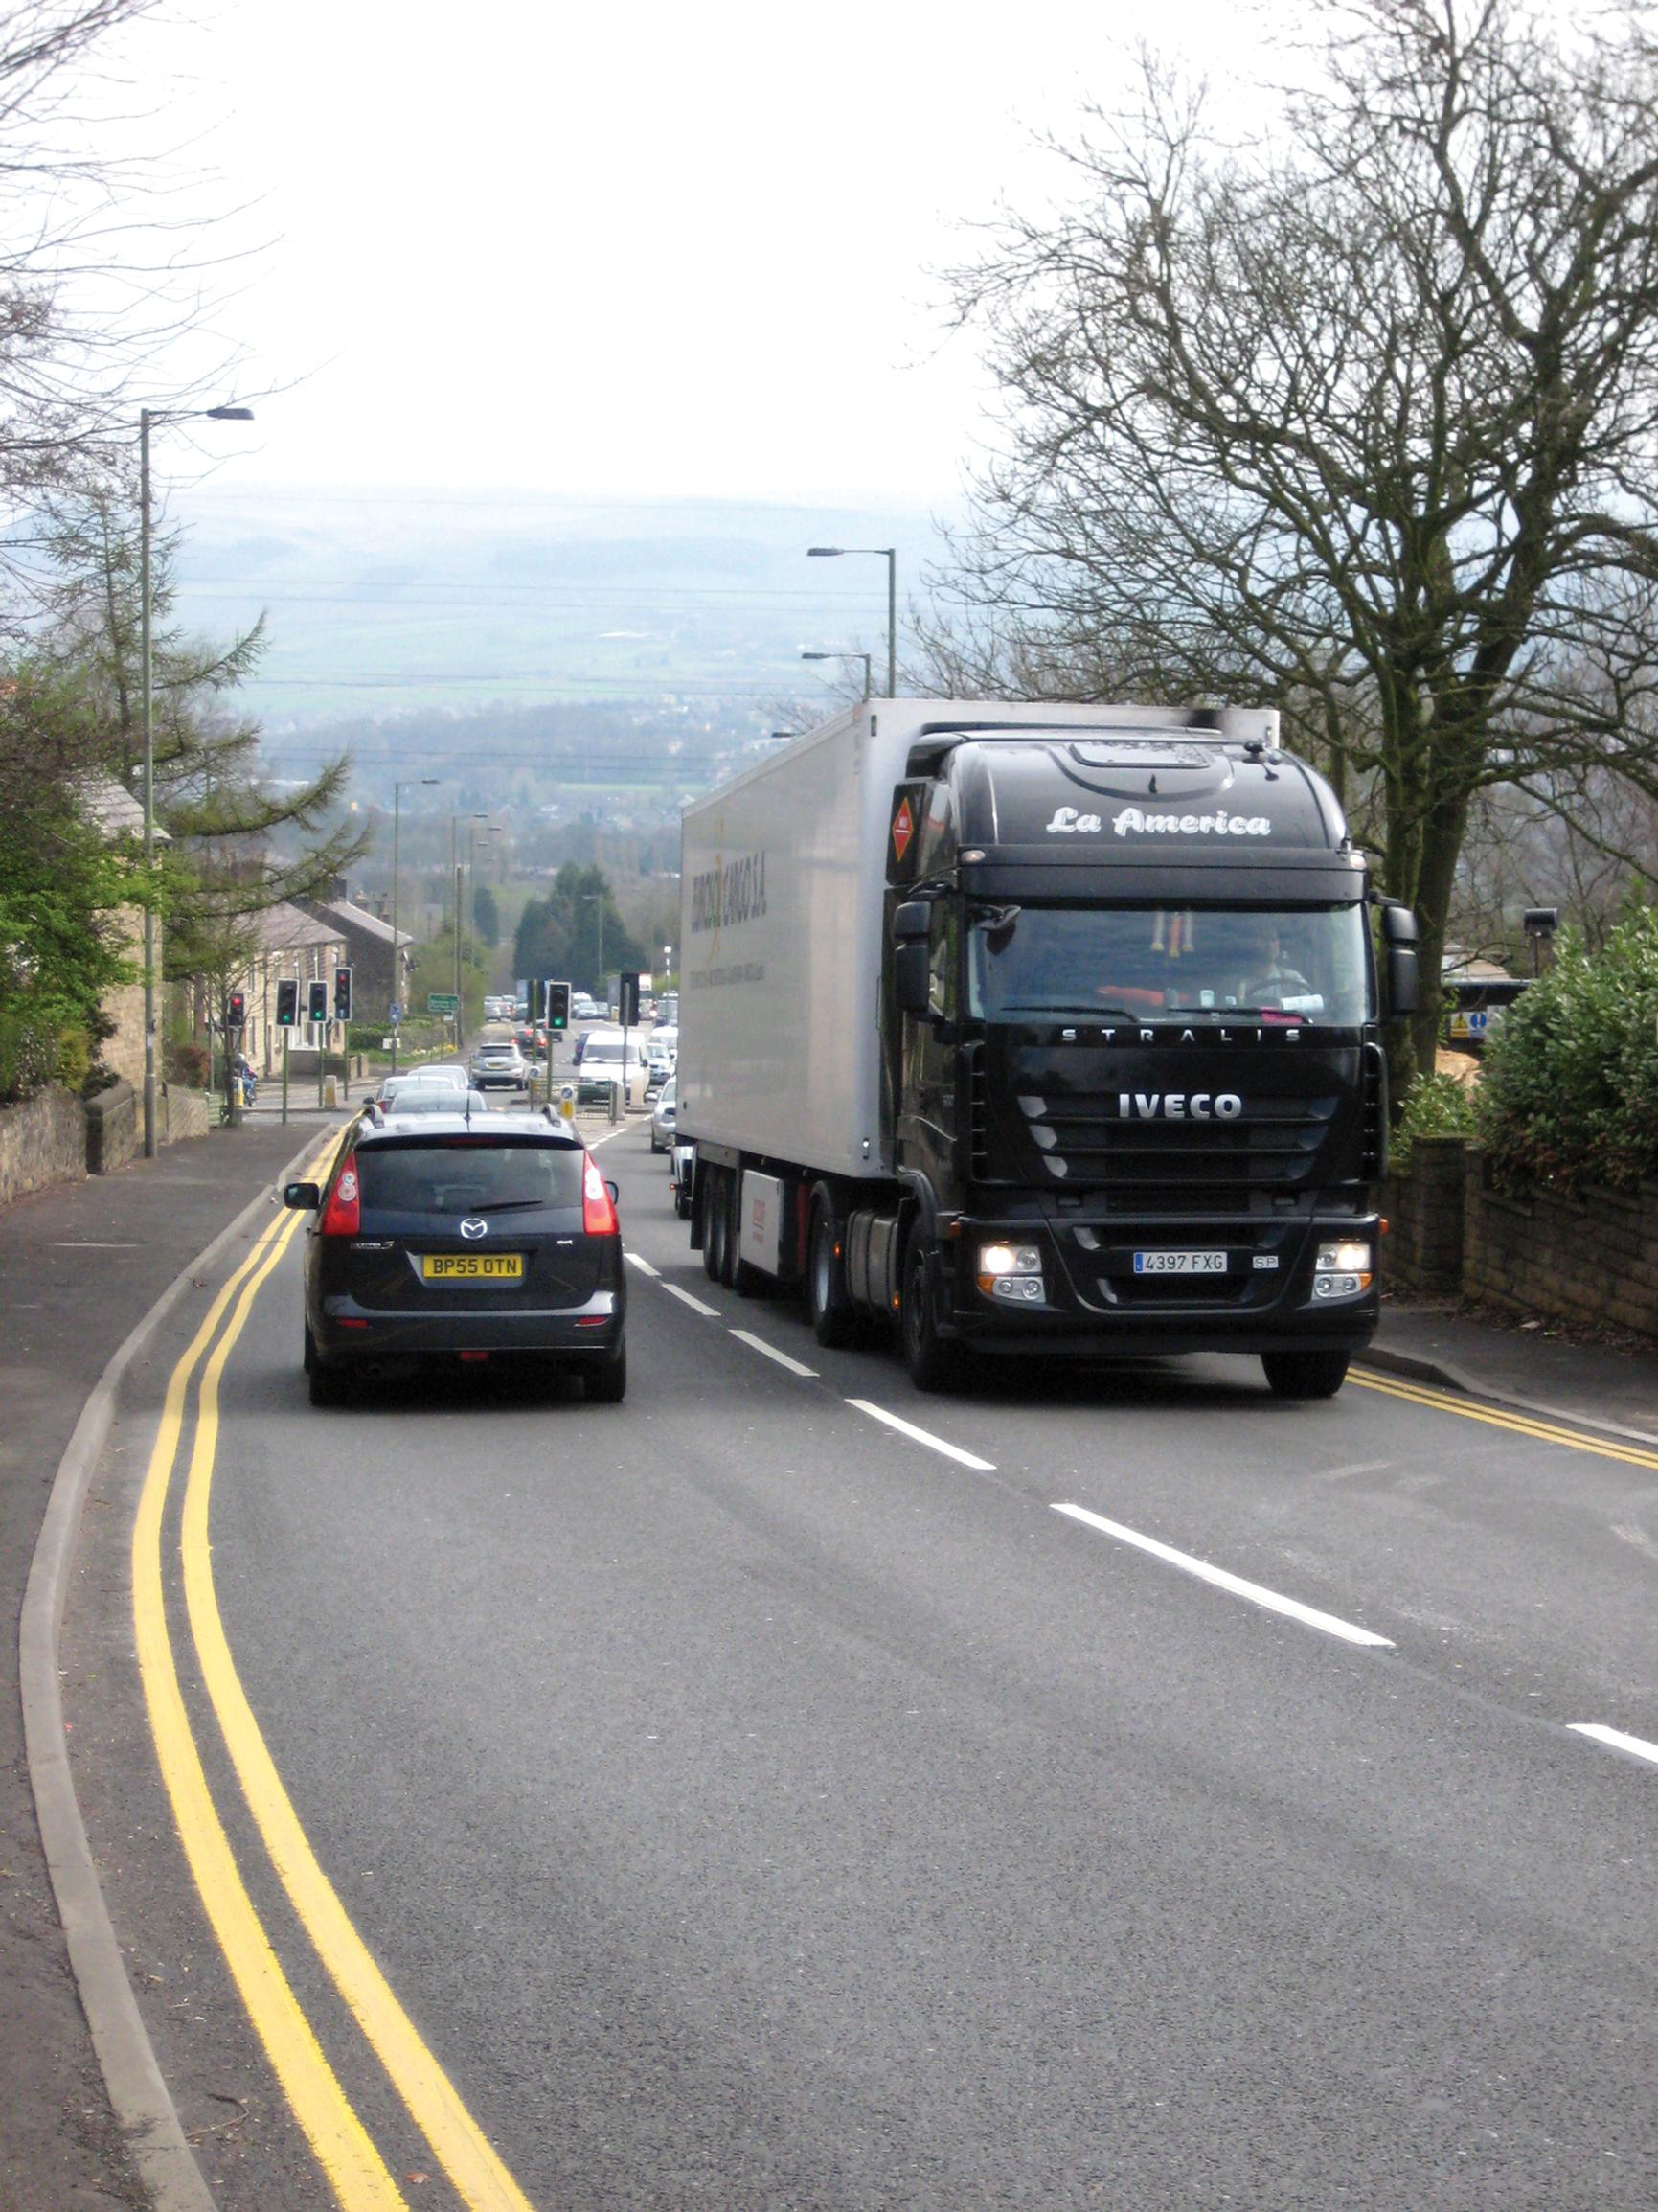 Distance-based HGV charge probed, as NIC studies freight